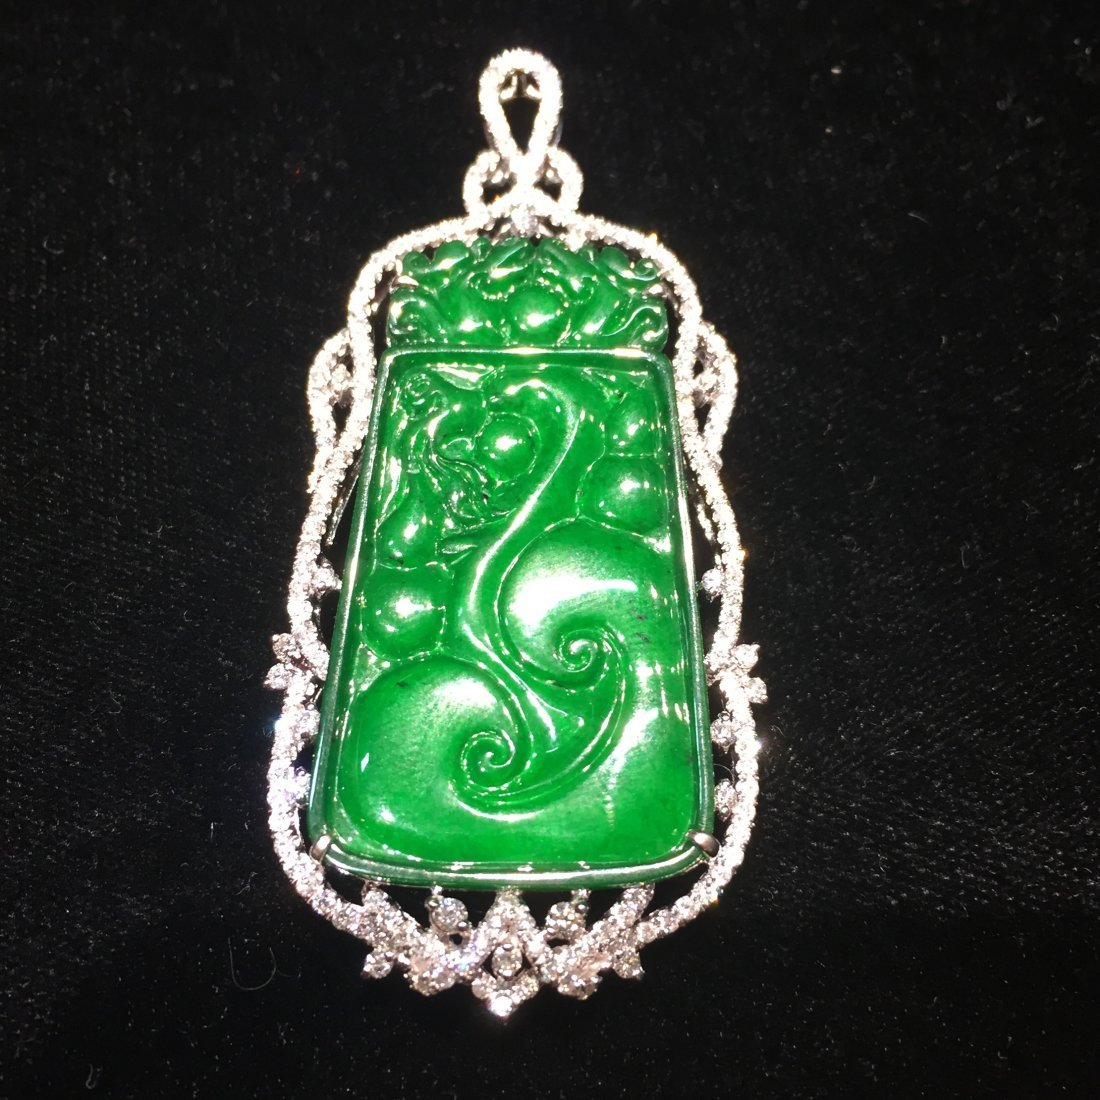 Certified Natural Burma Glassy Imperial Jadeite 18k